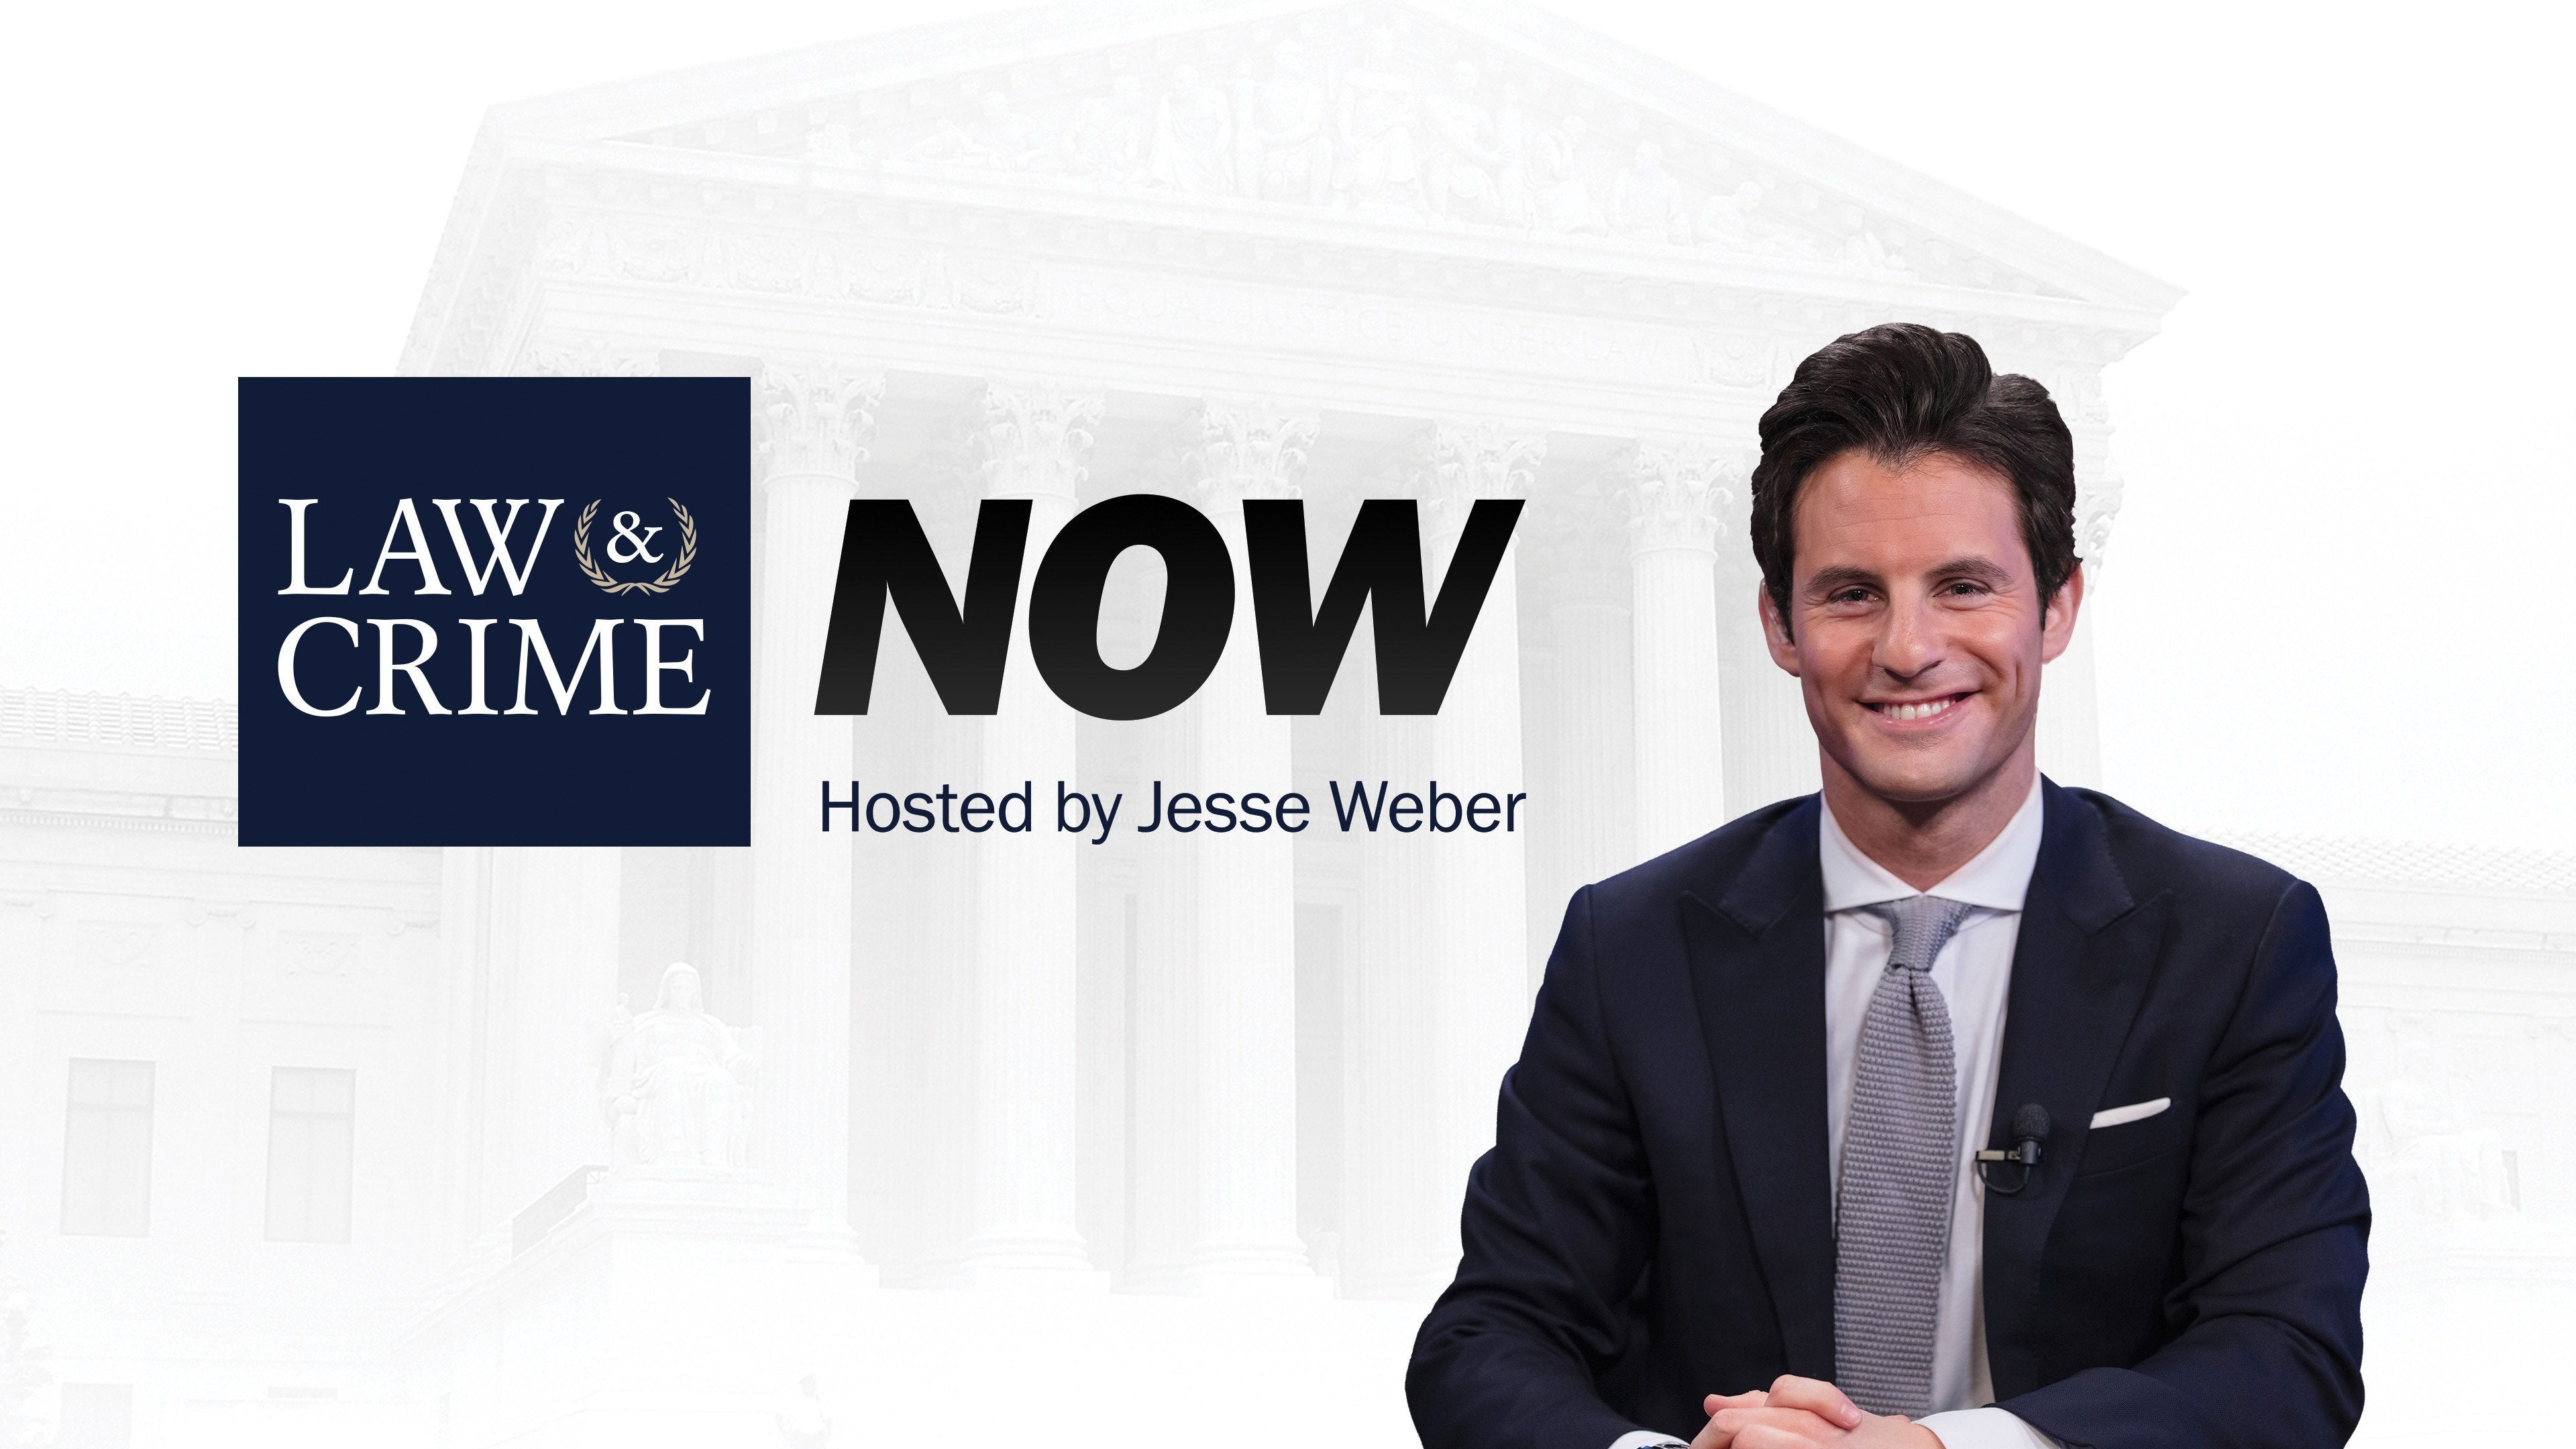 Law & Crime Now With Jesse Weber